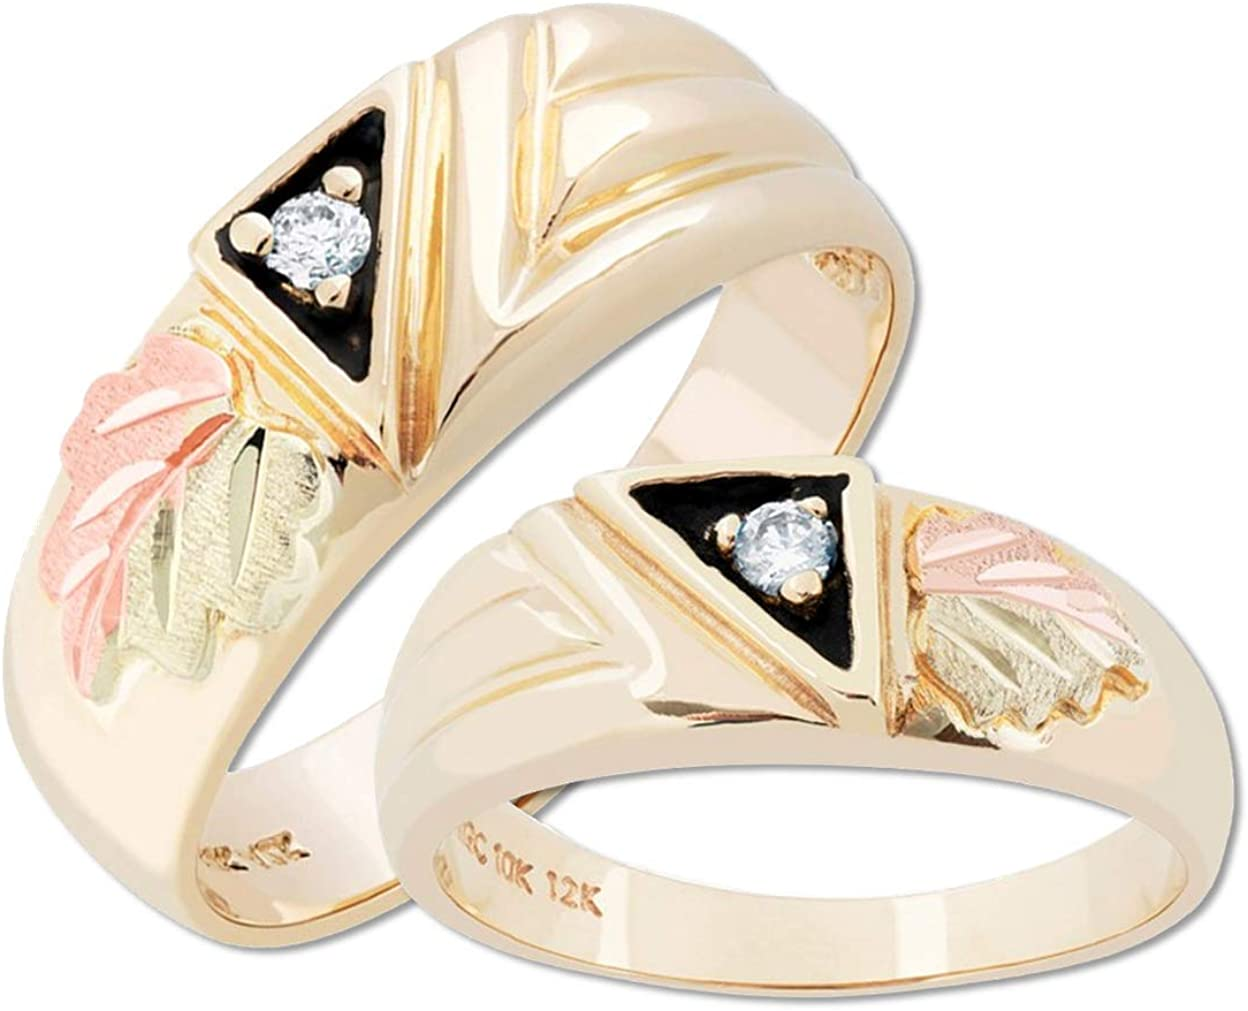 10k Yellow Gold, 12k Rose and Green Gold Diamond Black Hills Gold Band, His and Hers Wedding Ring Set